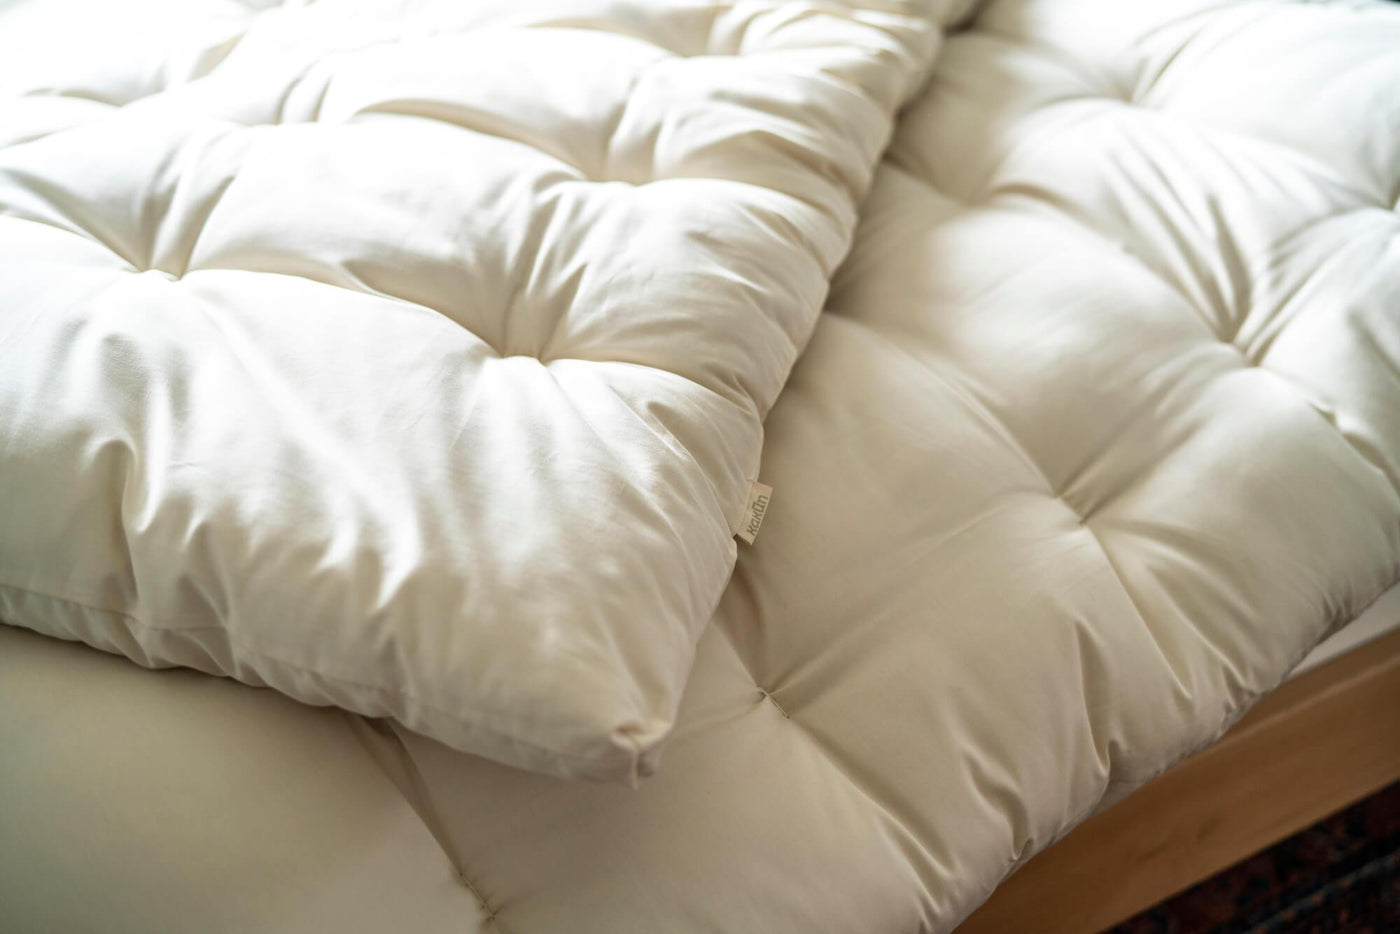 Organic wool mattress toppers from Resthouse.